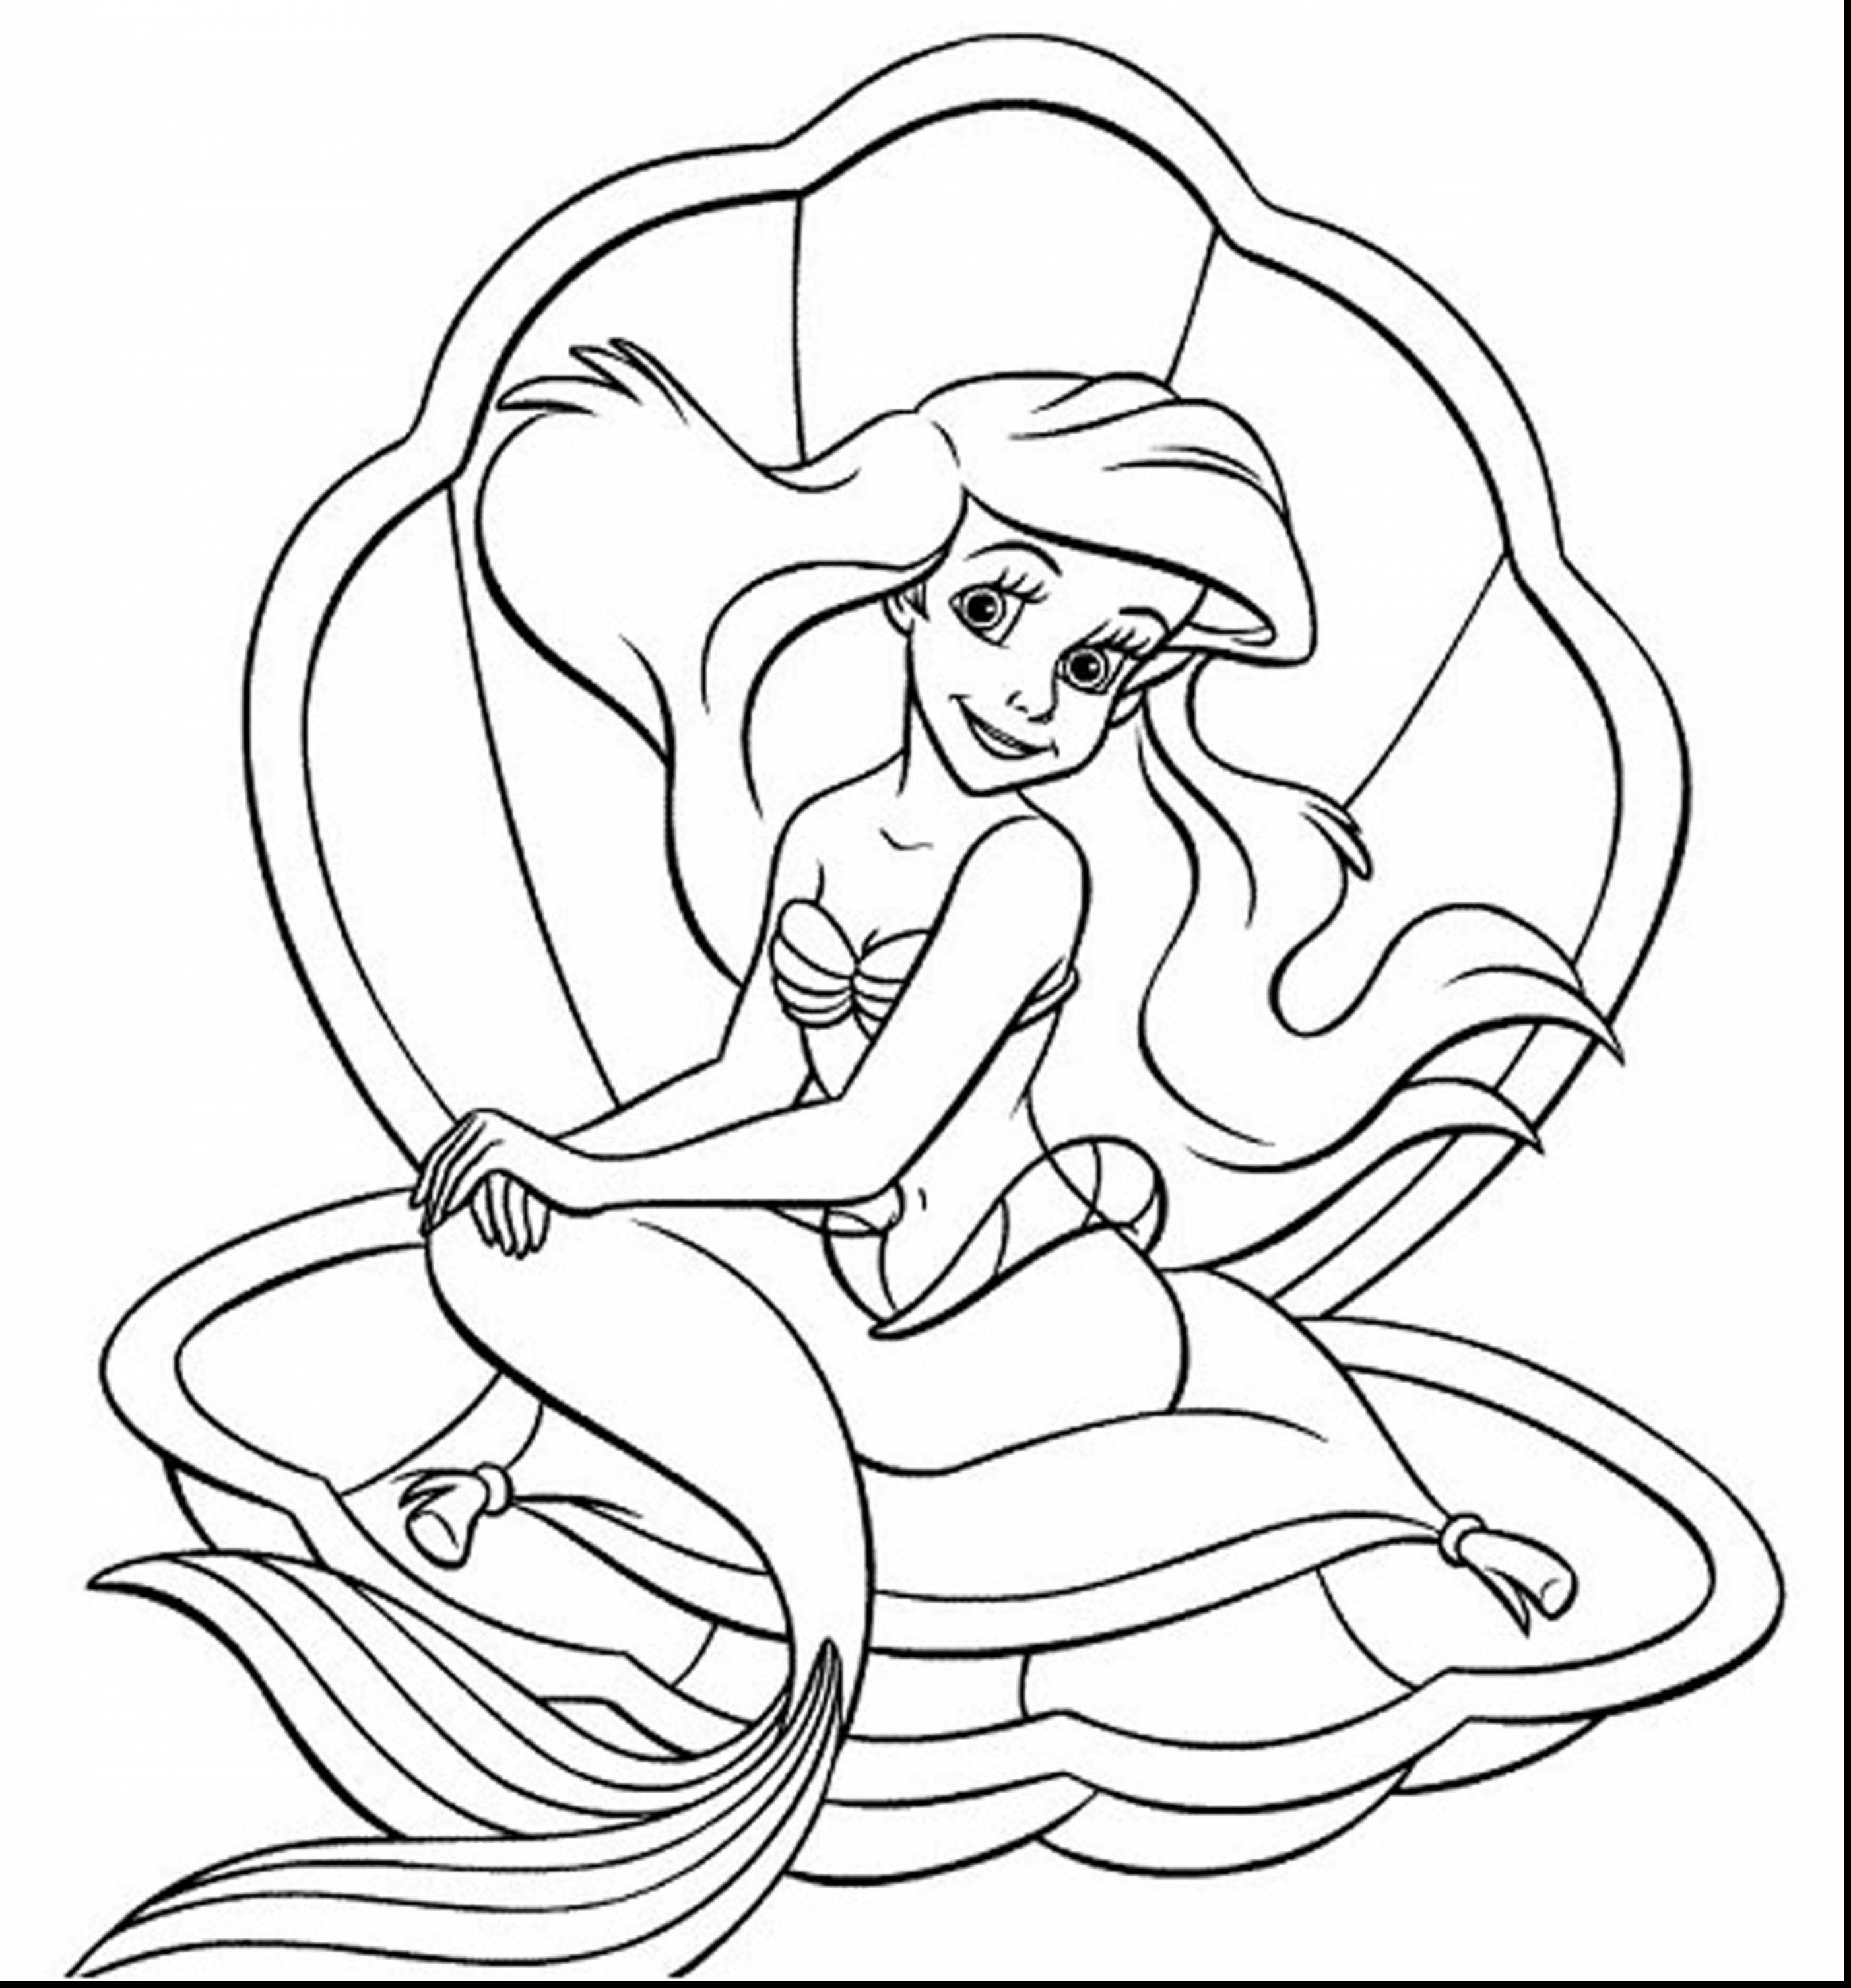 sofia pictures to colour sofia the first coloring pages for girls to print for free sofia colour to pictures